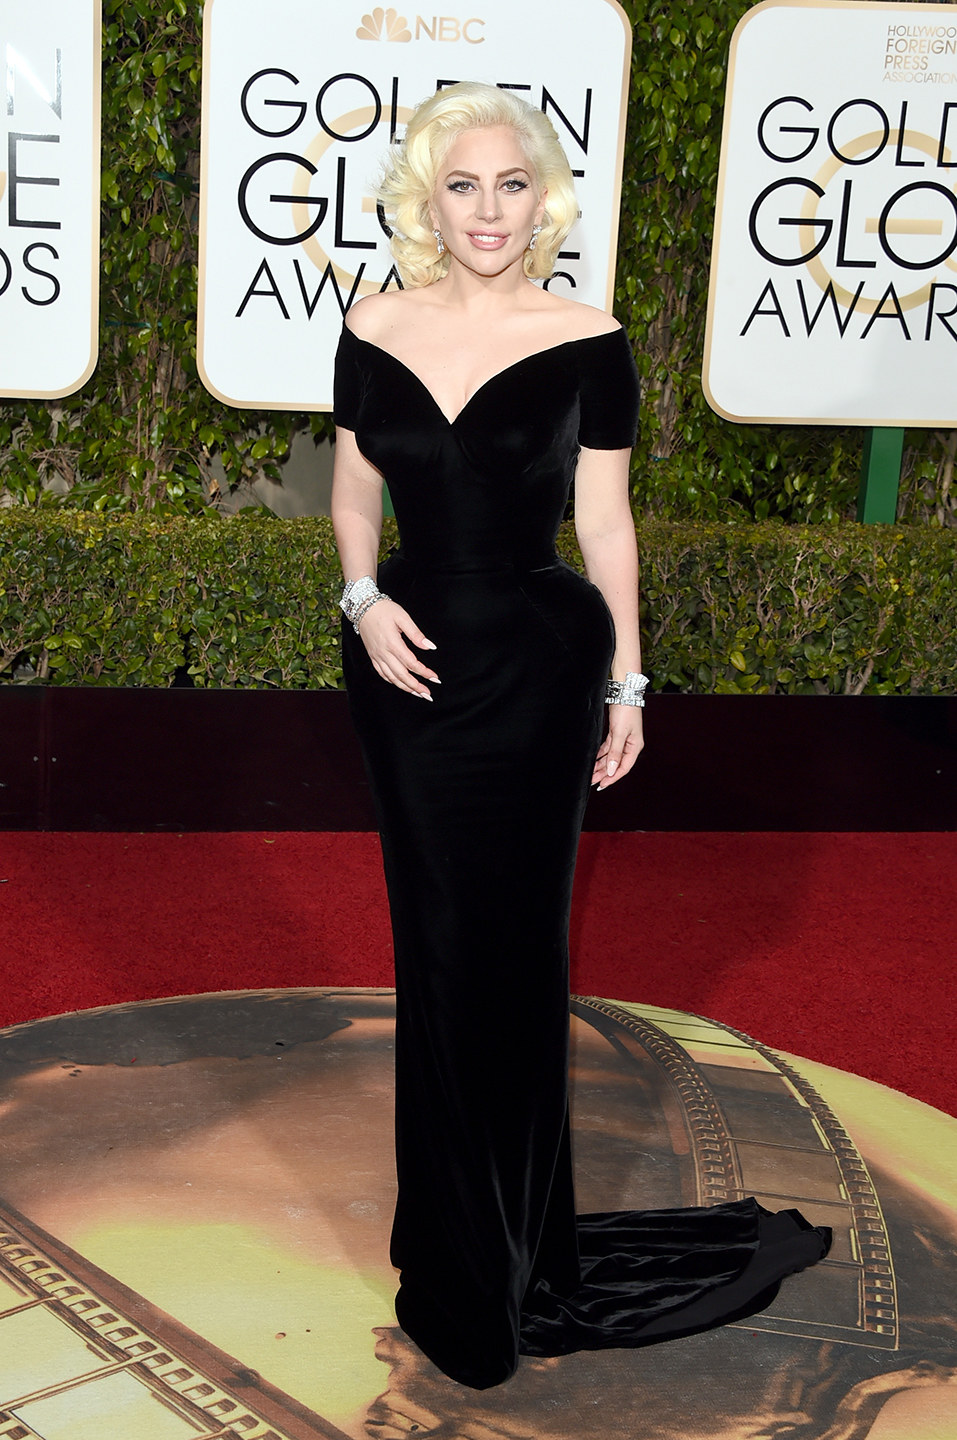 golden-globes-2016-lady-gaga.jpg (373.52 Kb)